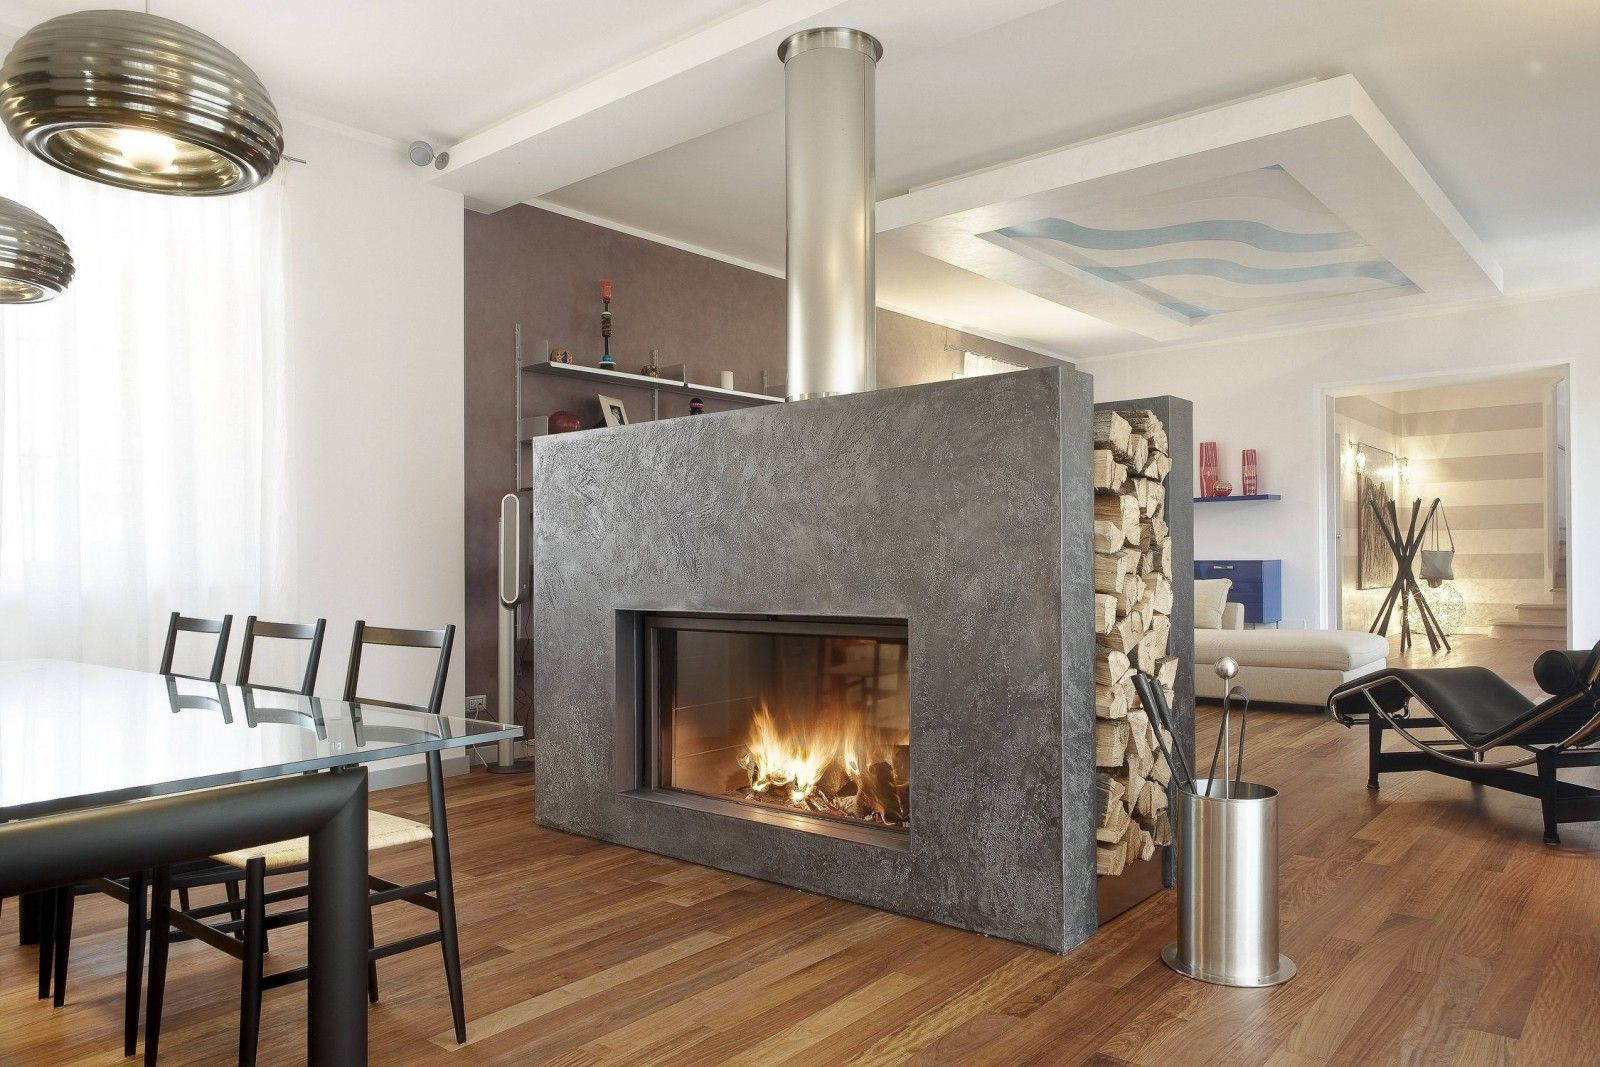 Modern Open Fireplace Designs To Warm Your Home